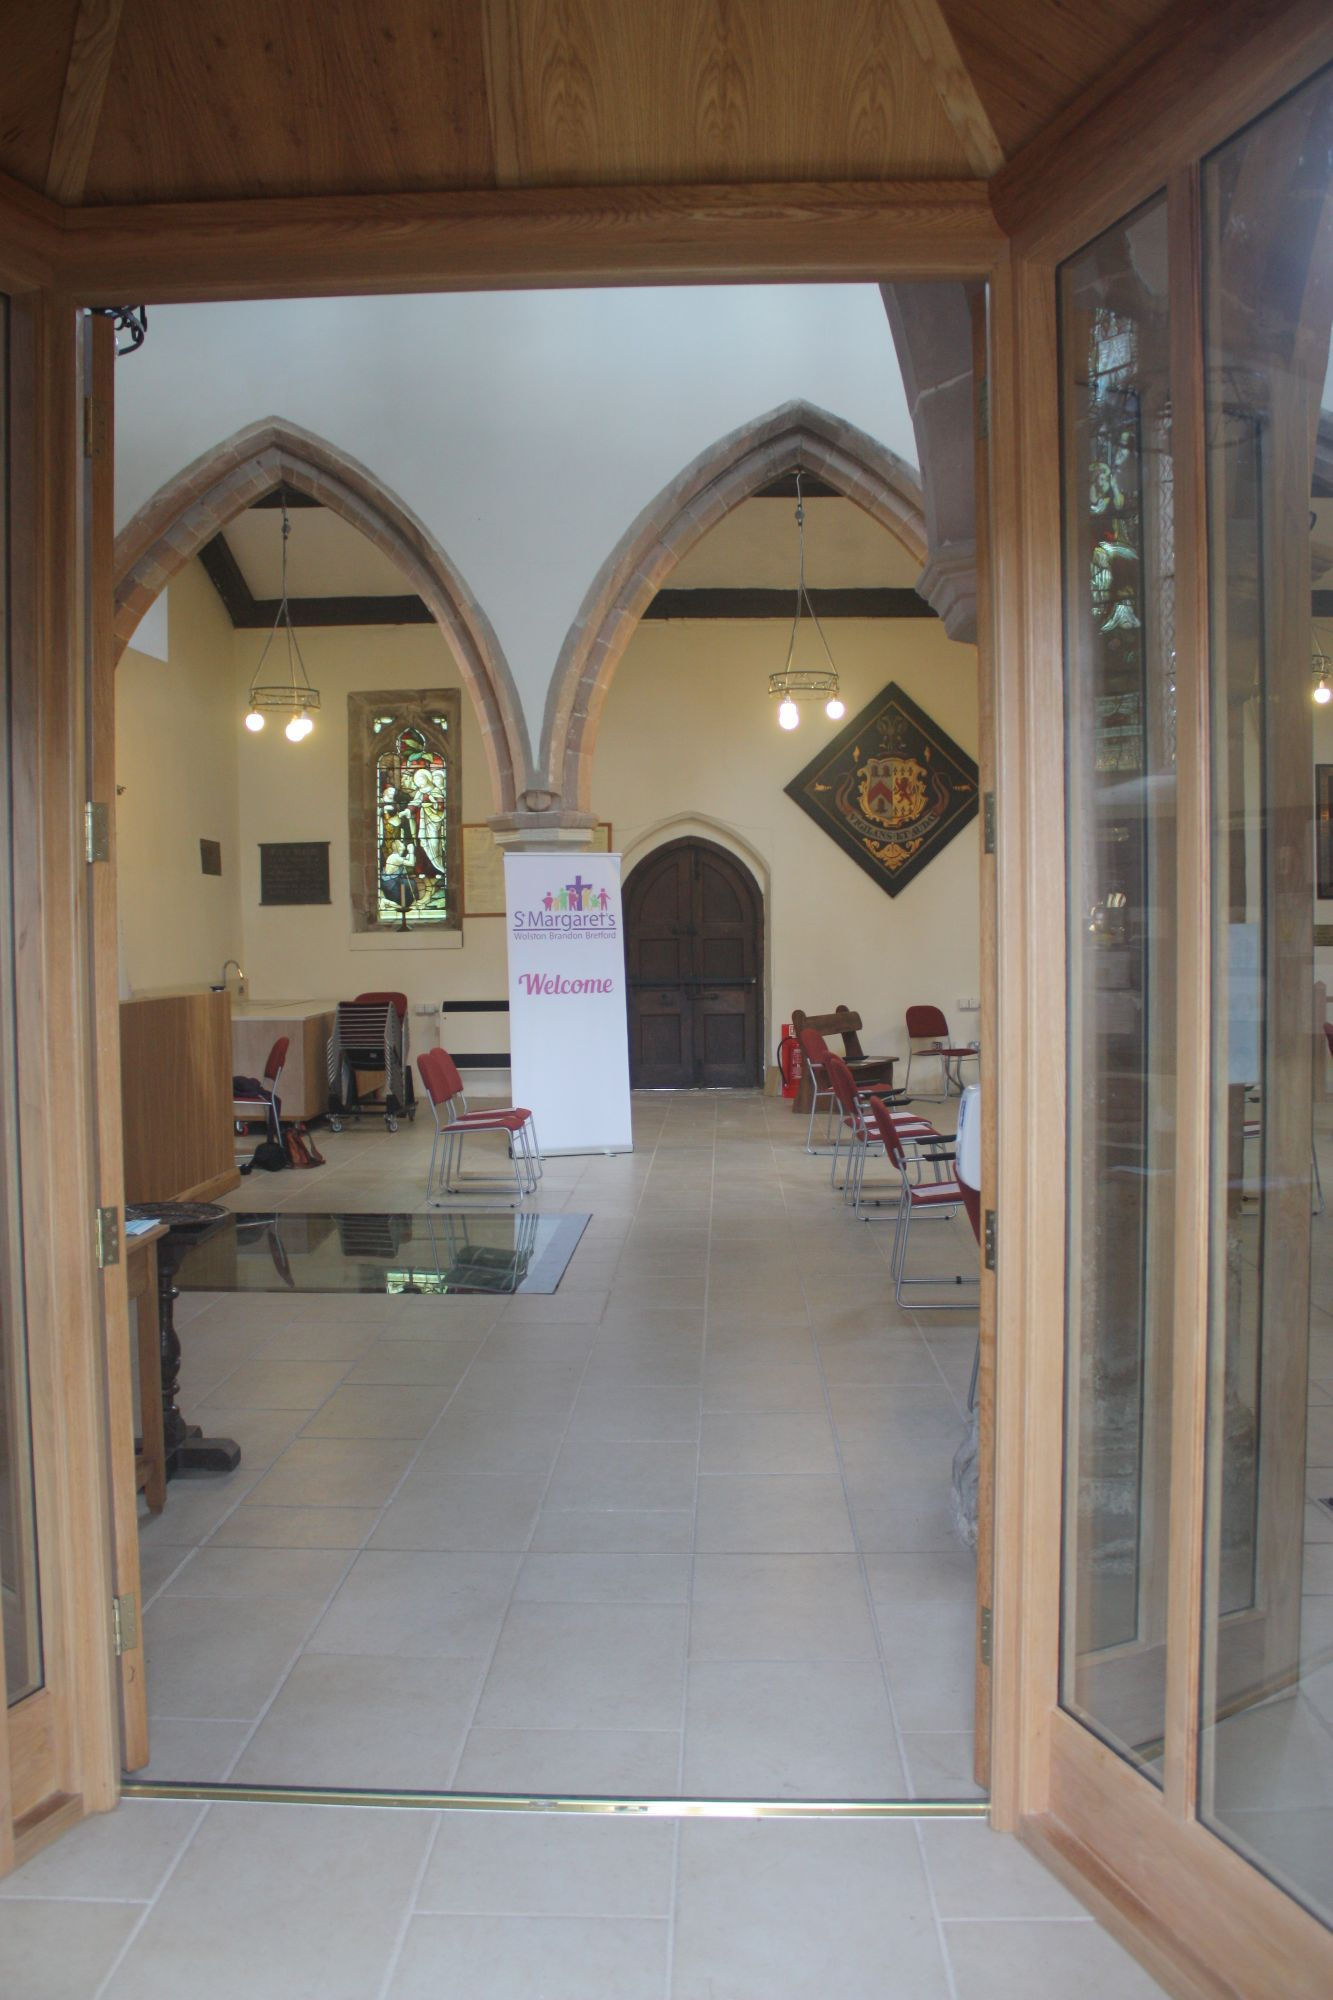 A photograph showing a view from inside the door, showing the porch.